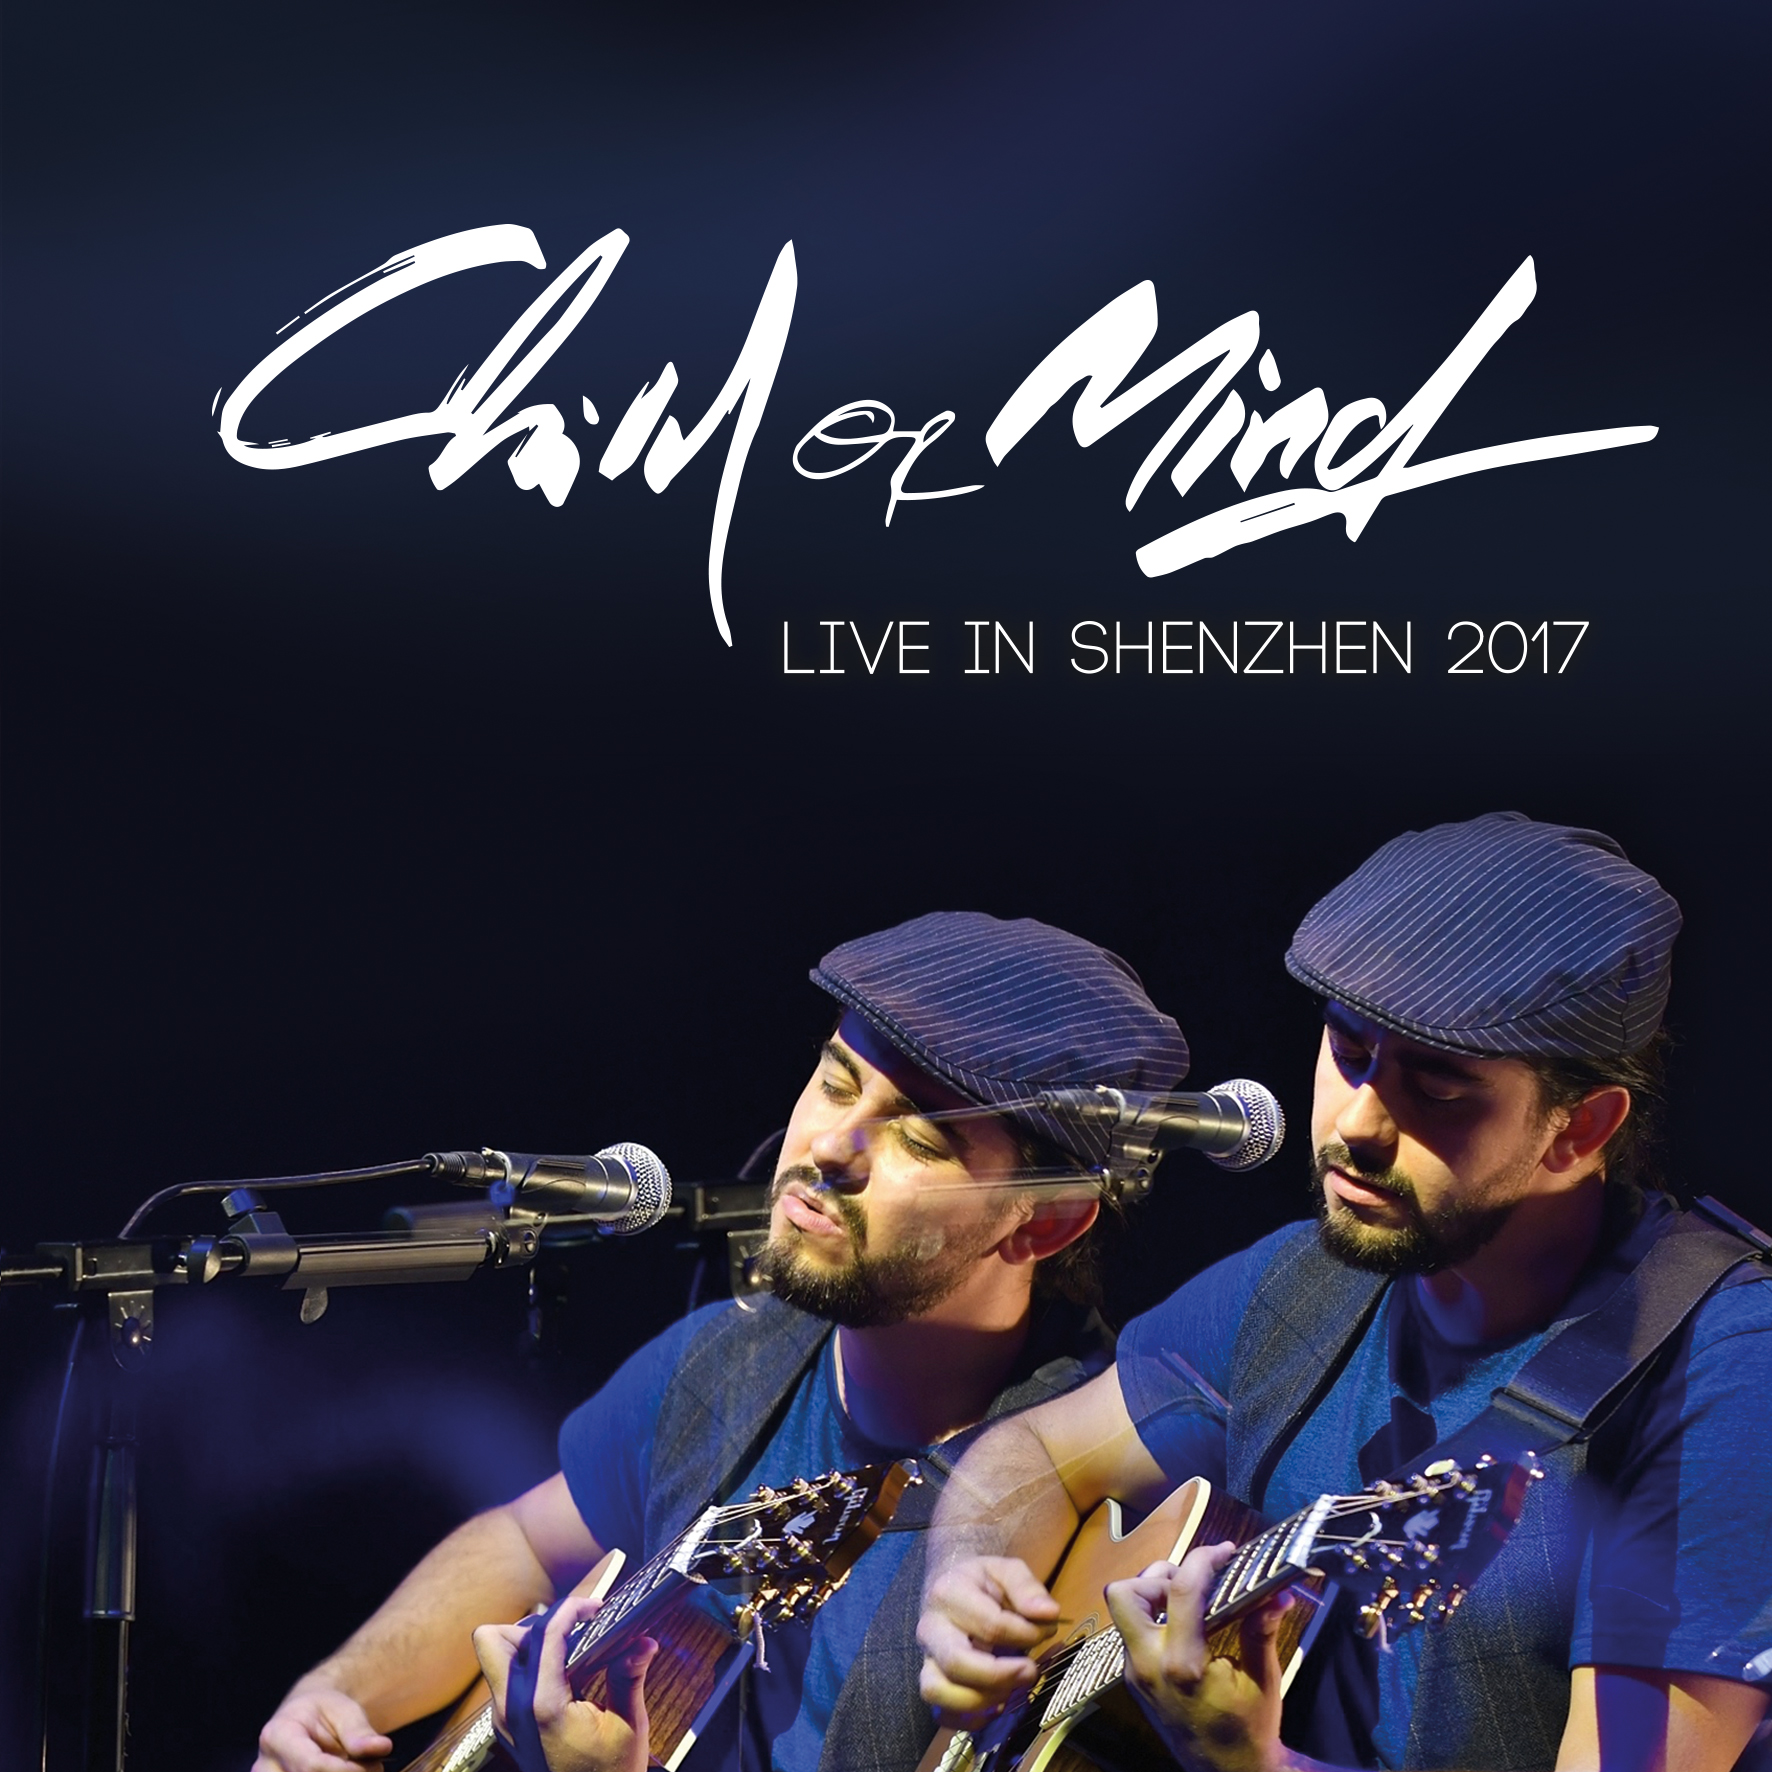 Live in Shenzhen 2017-ChildOfMind_CD-Cover.jpg